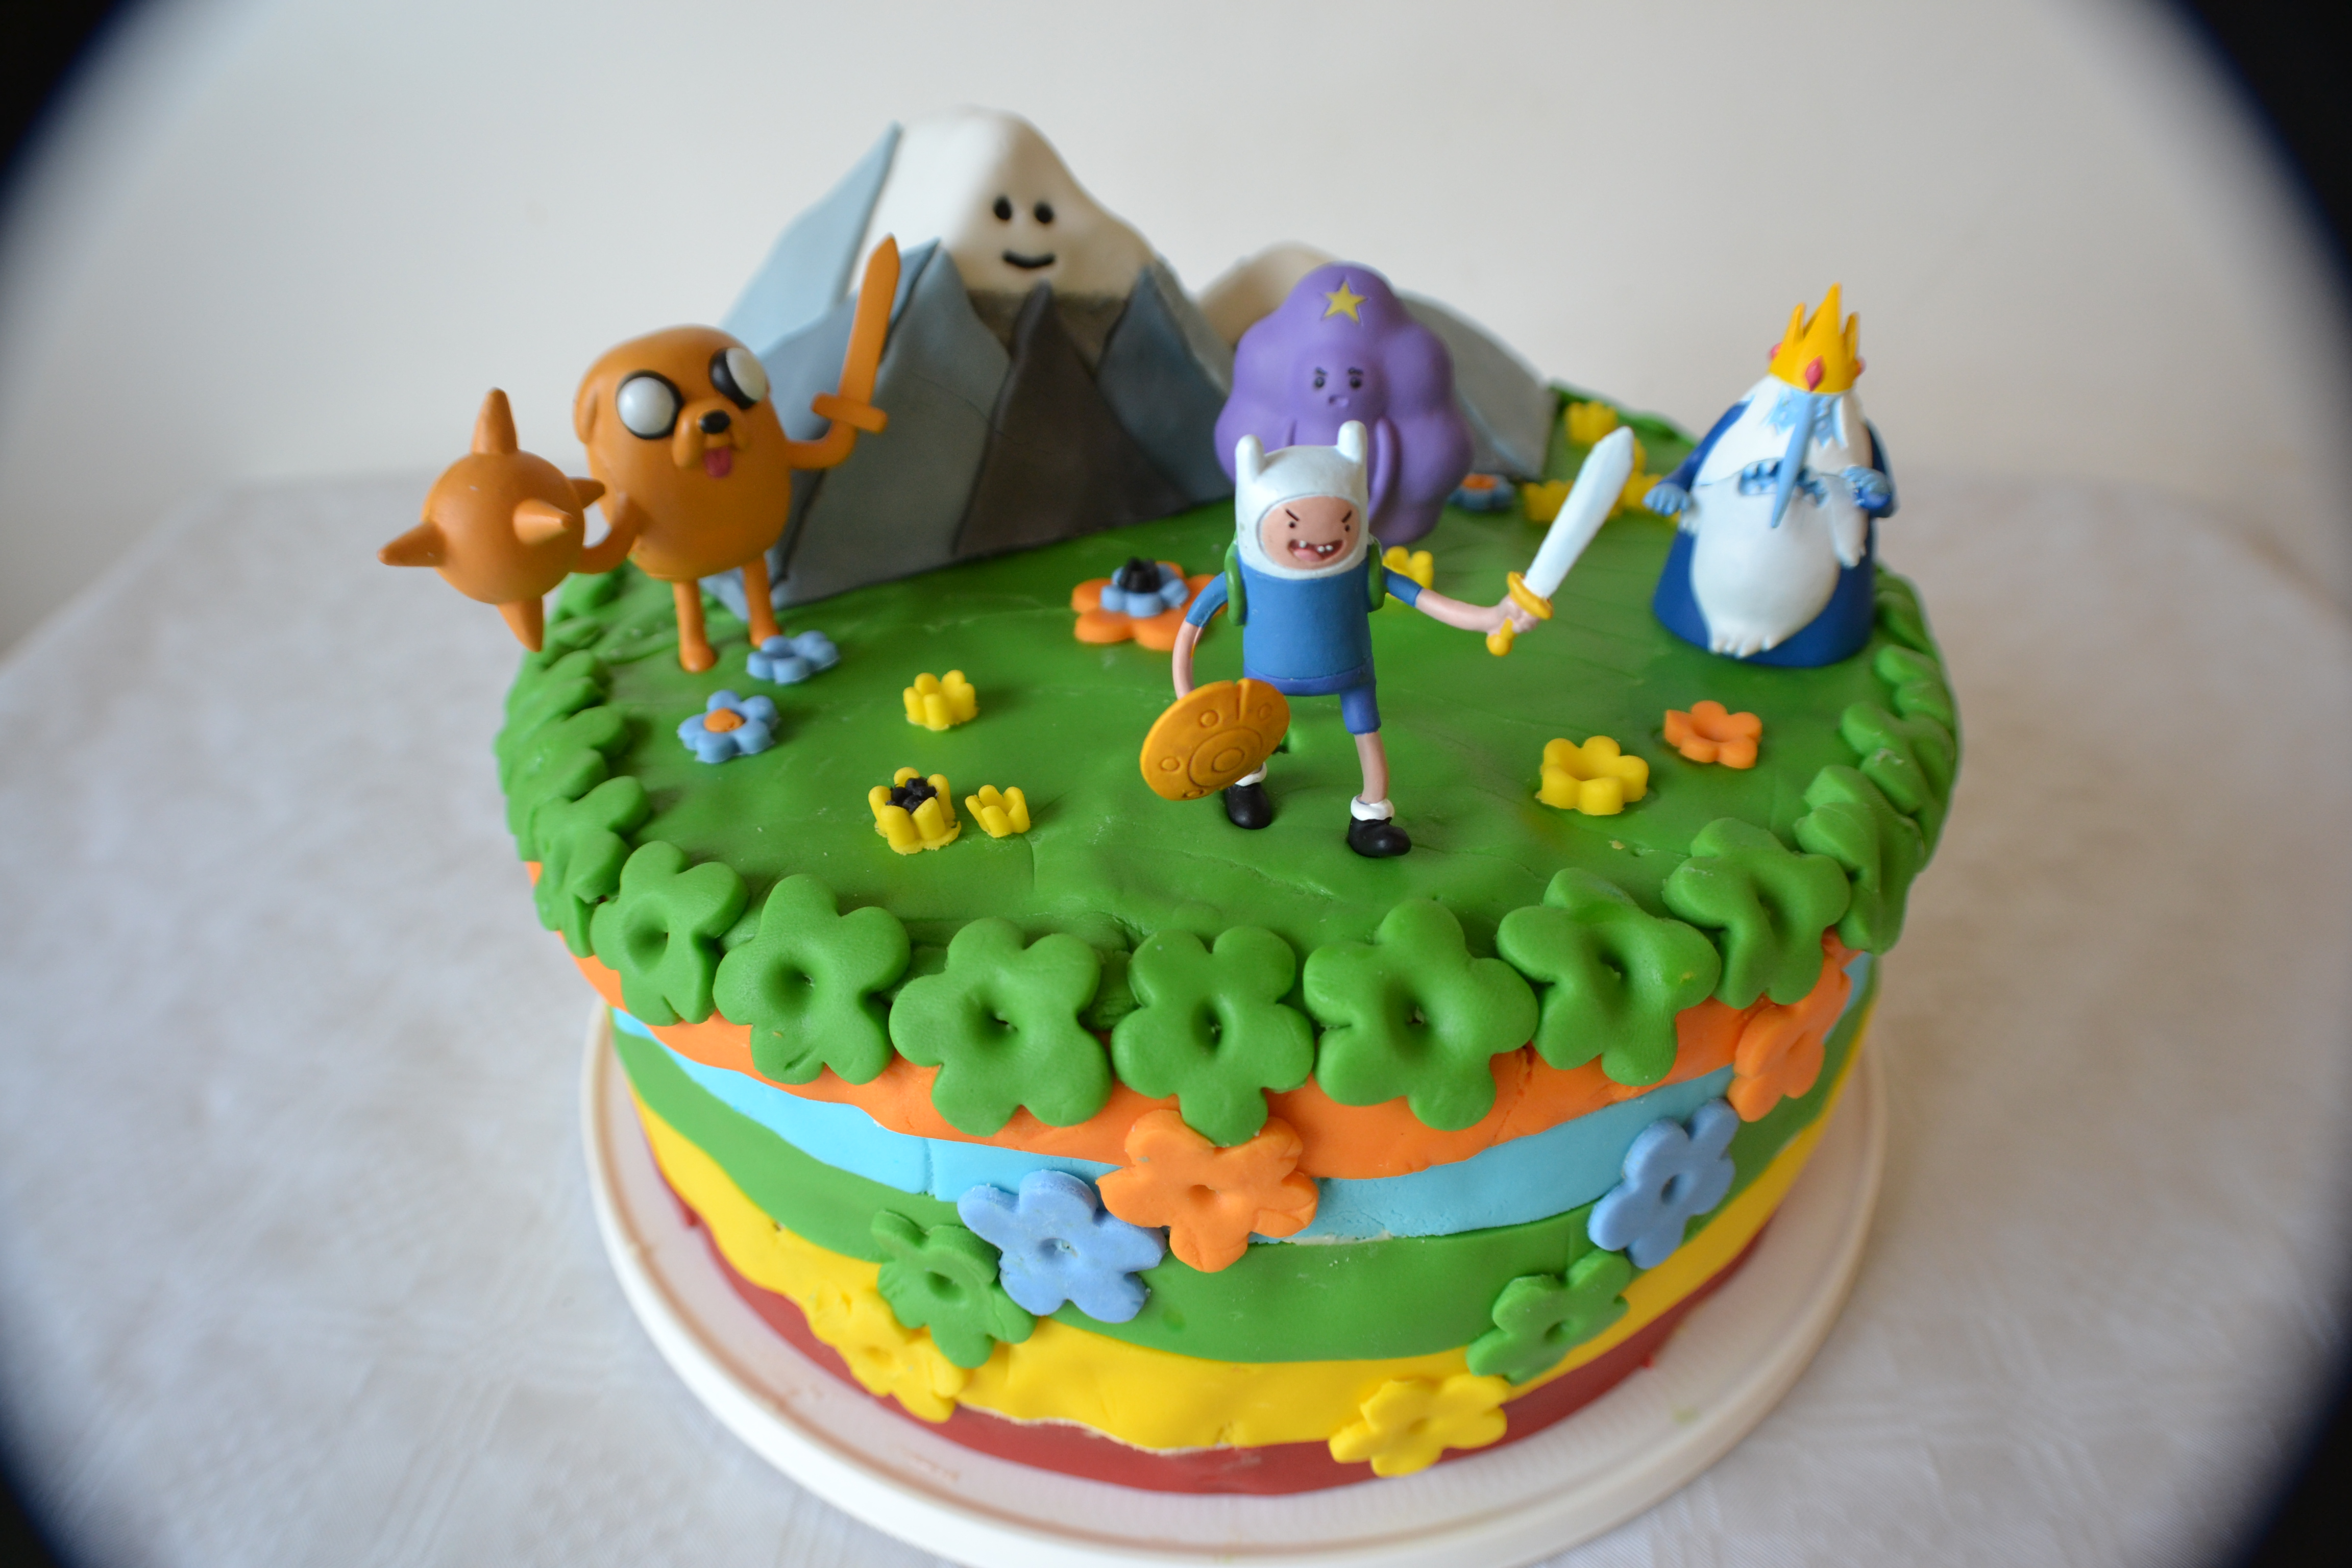 A cake for my cake day. 7 years! : adventuretime